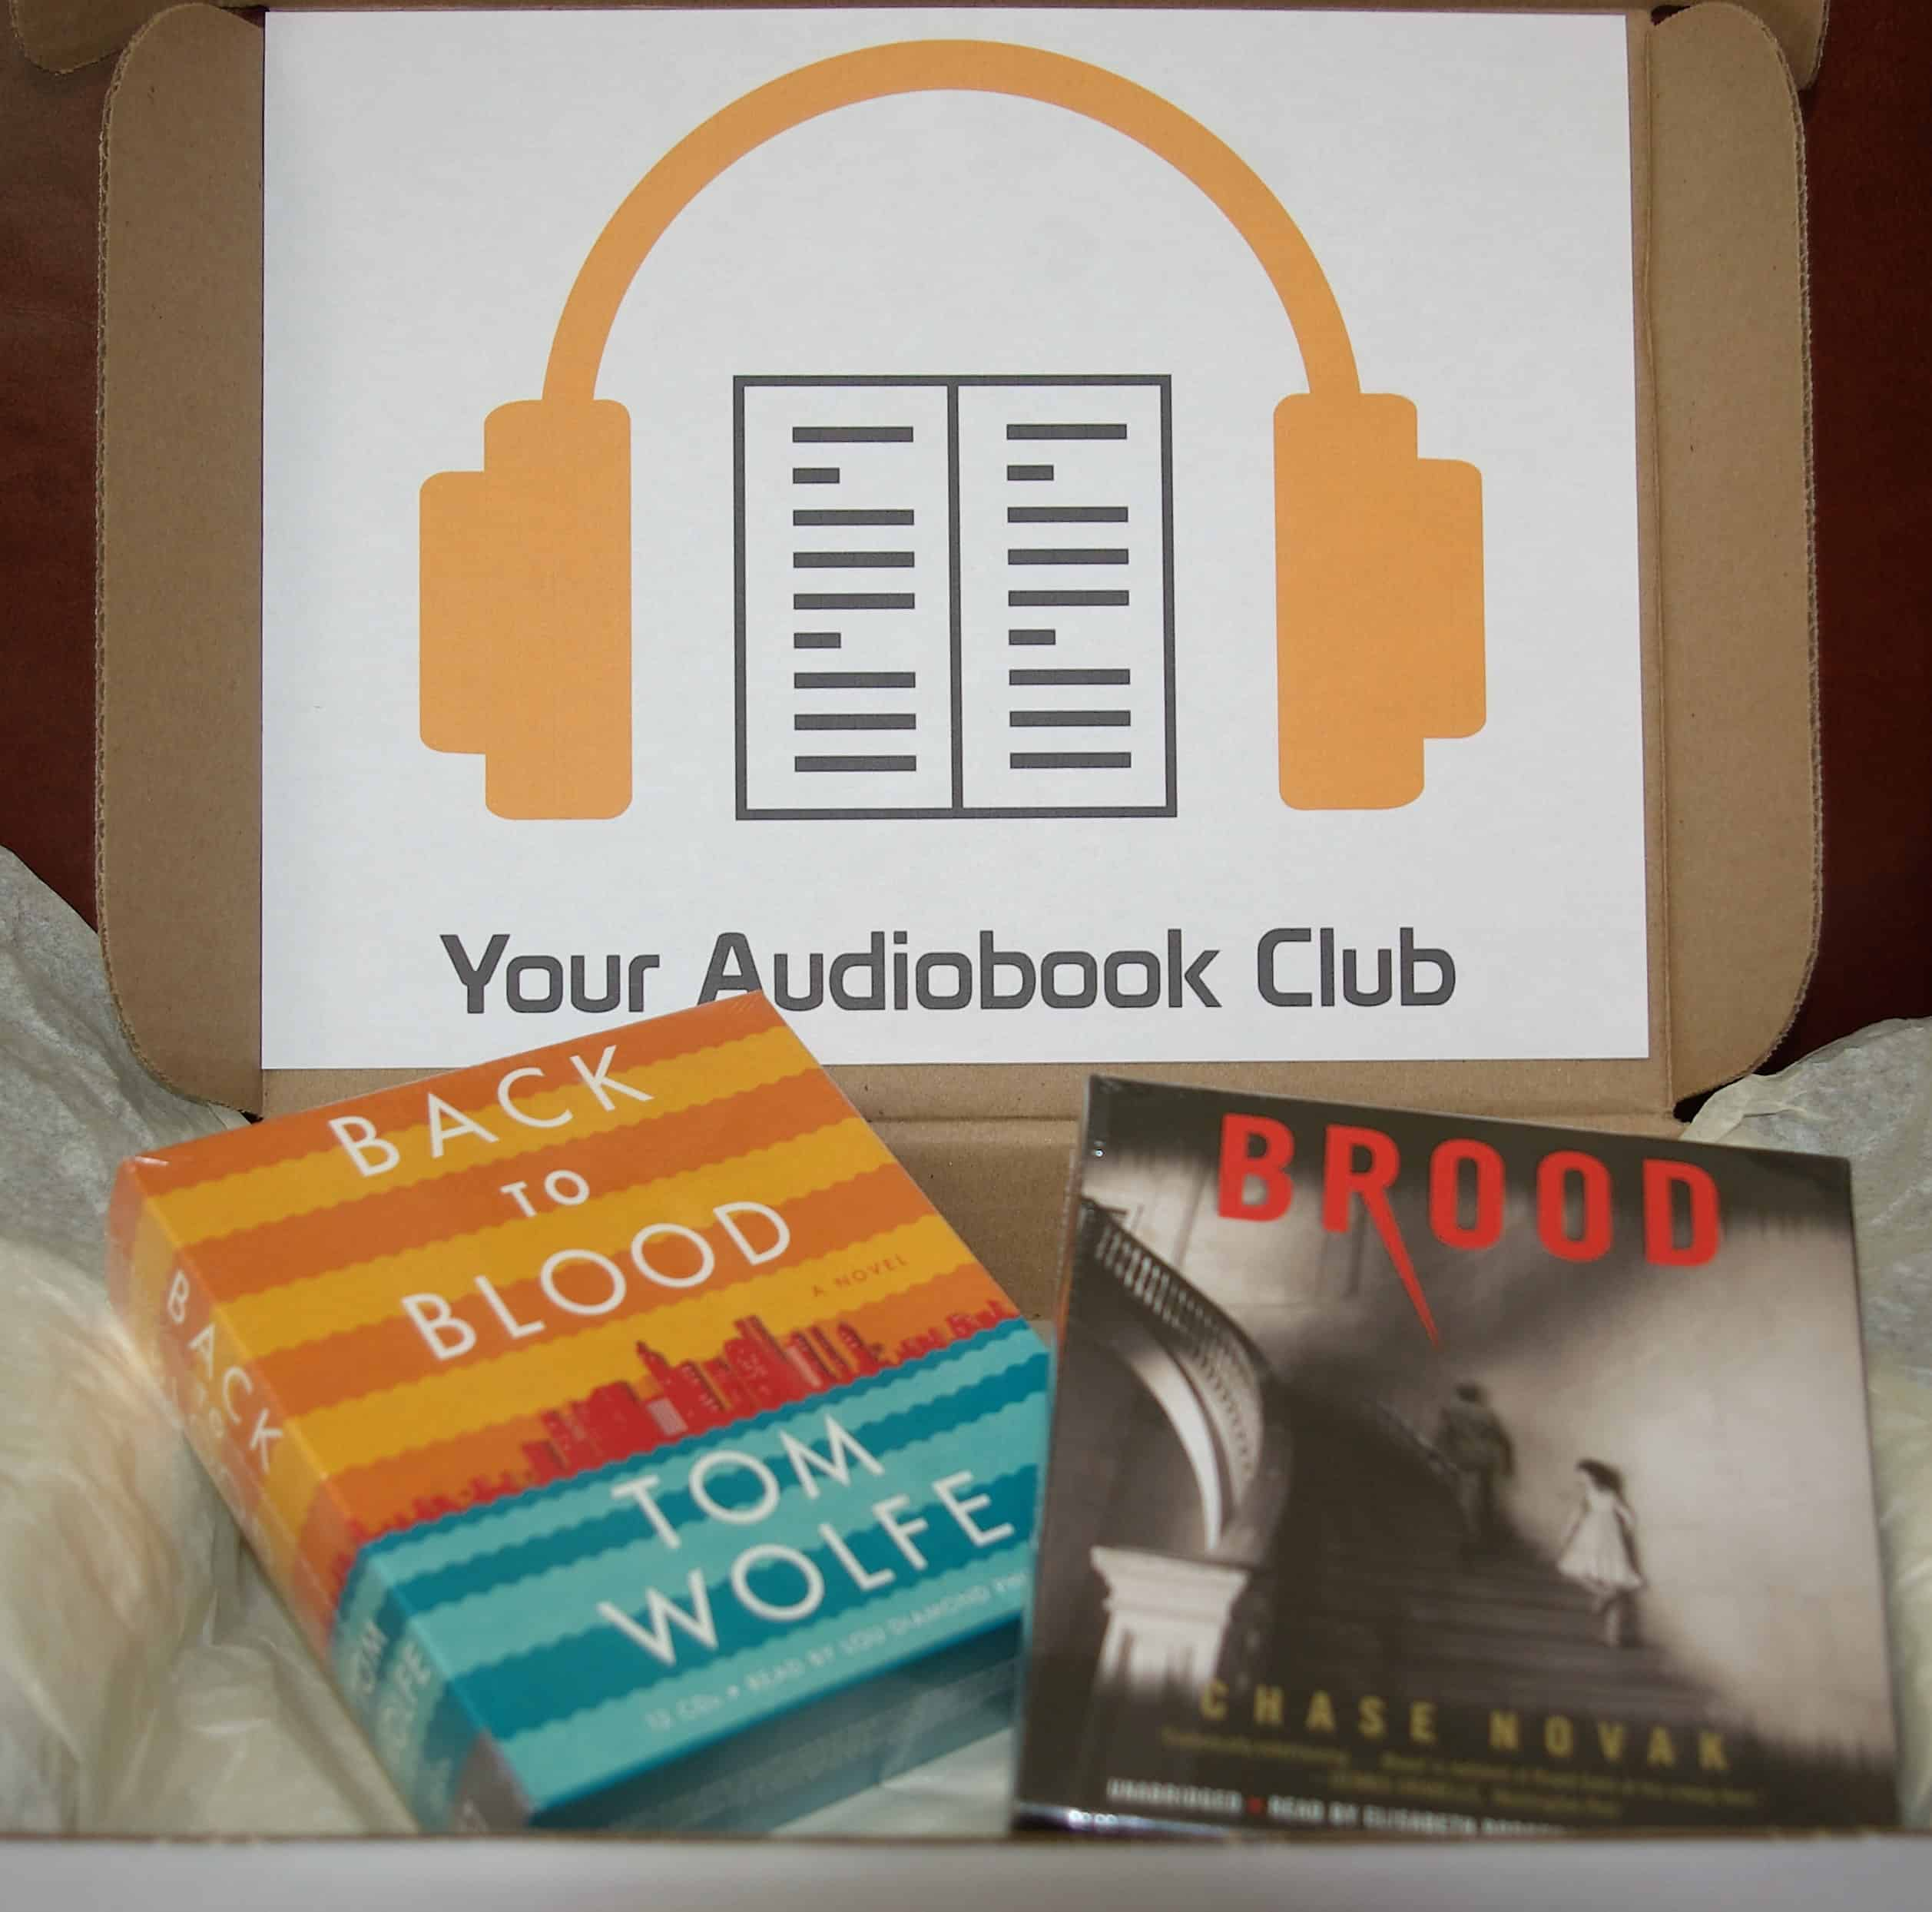 Your Audiobook Club